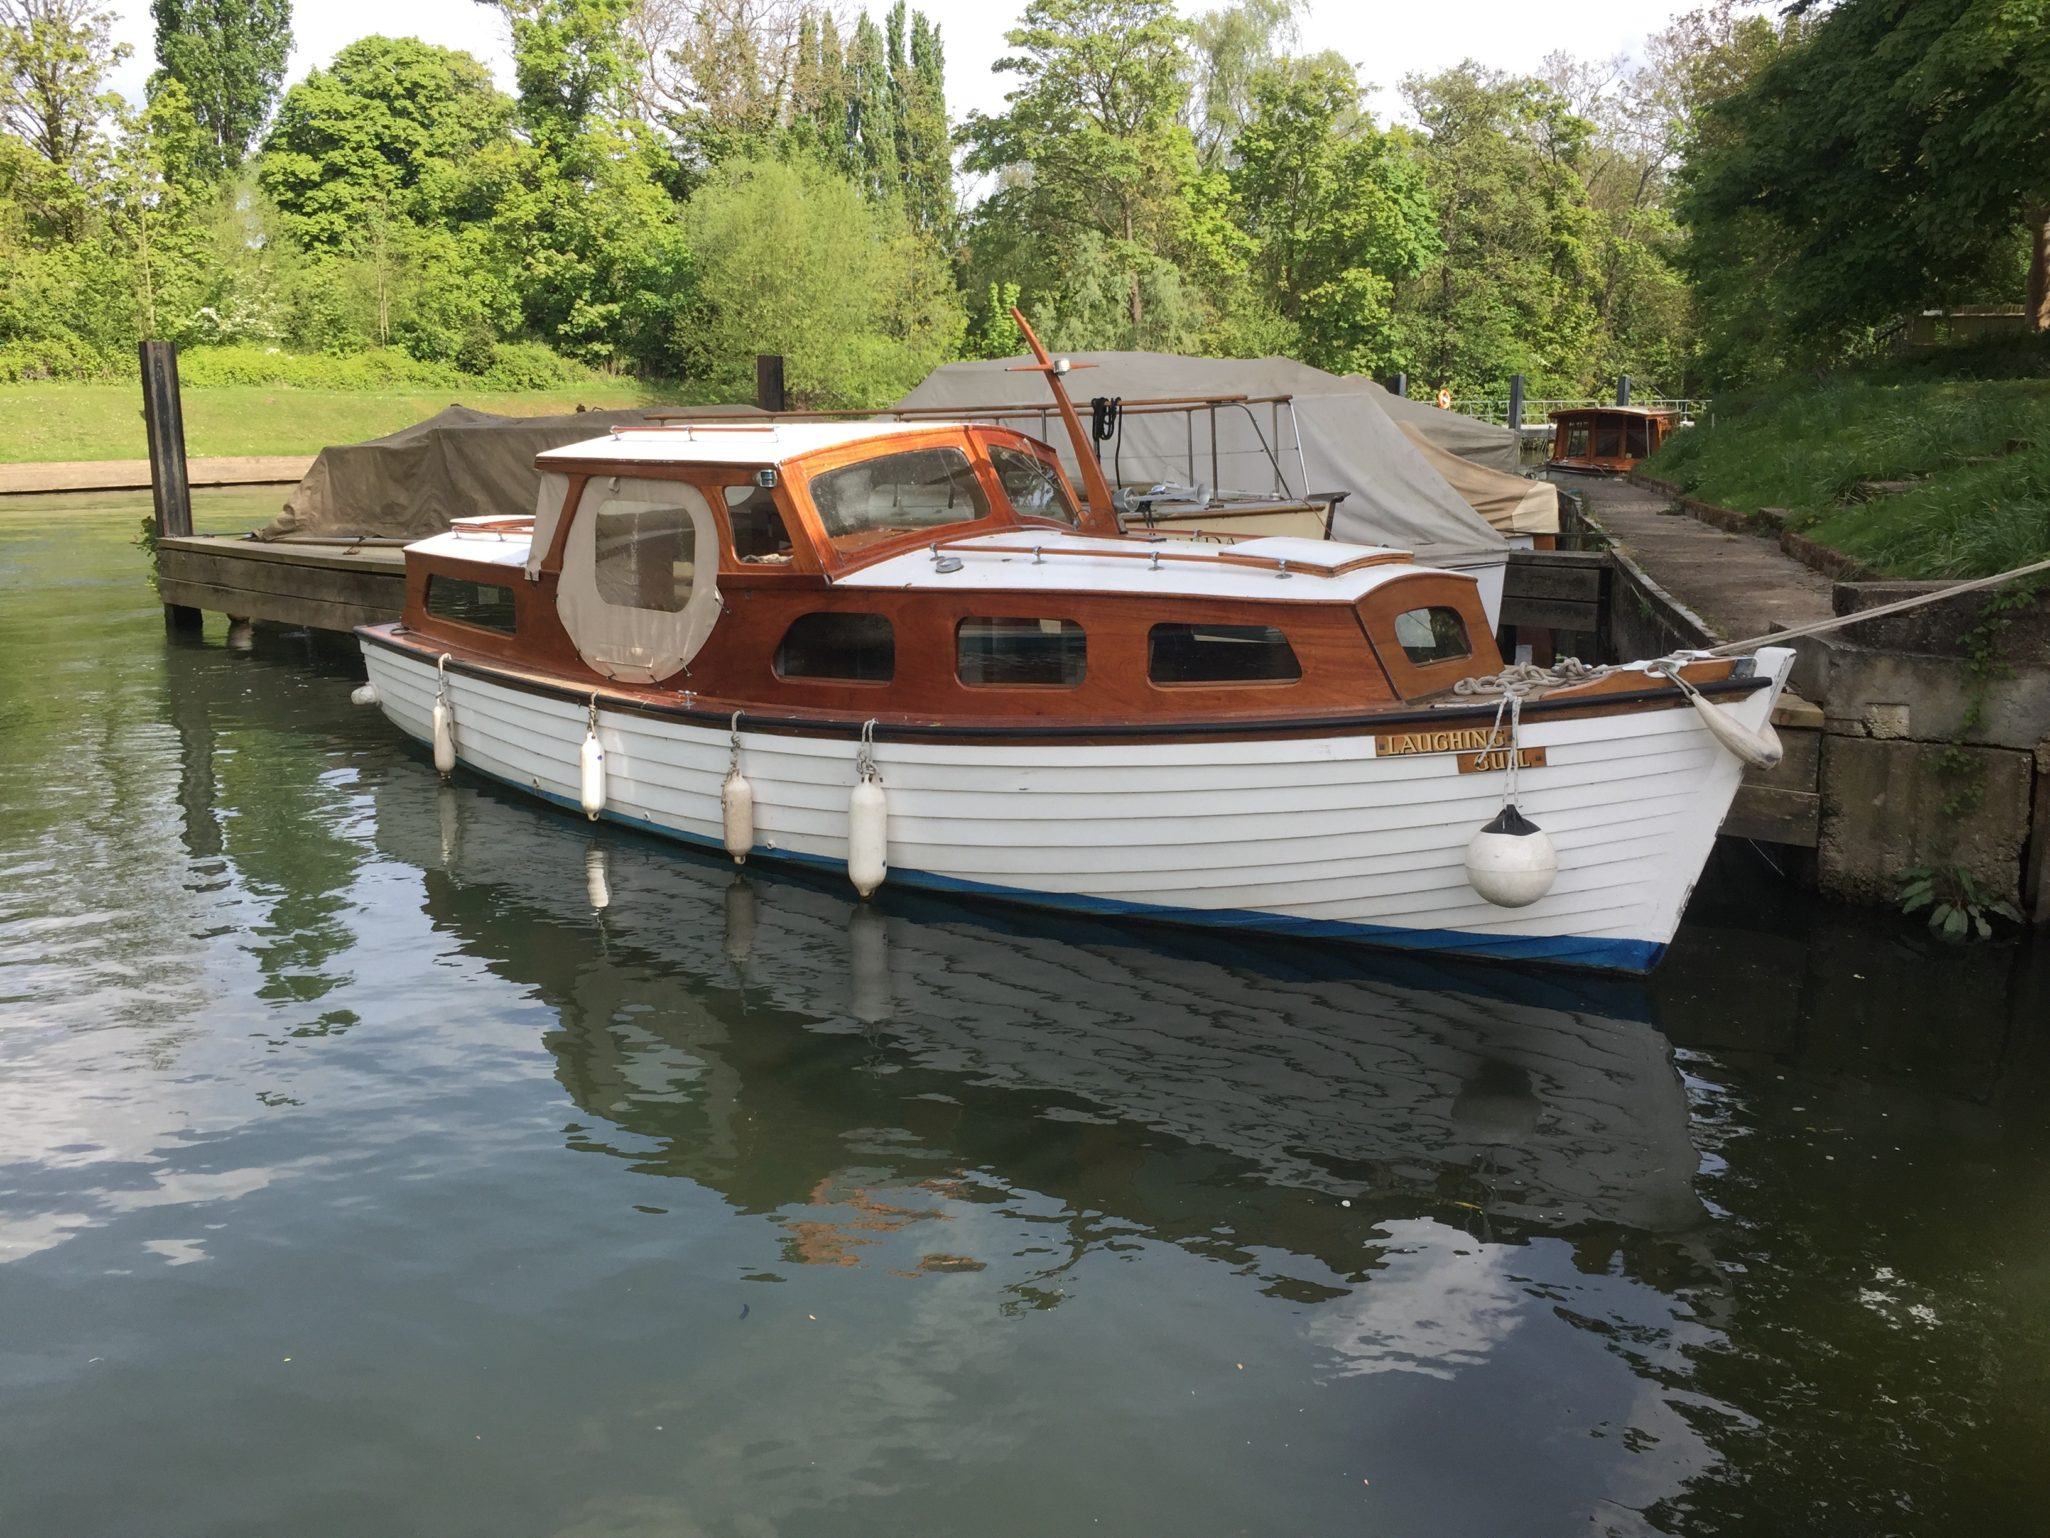 Boatbreakers News - Classic Wooden Boat Scrapped